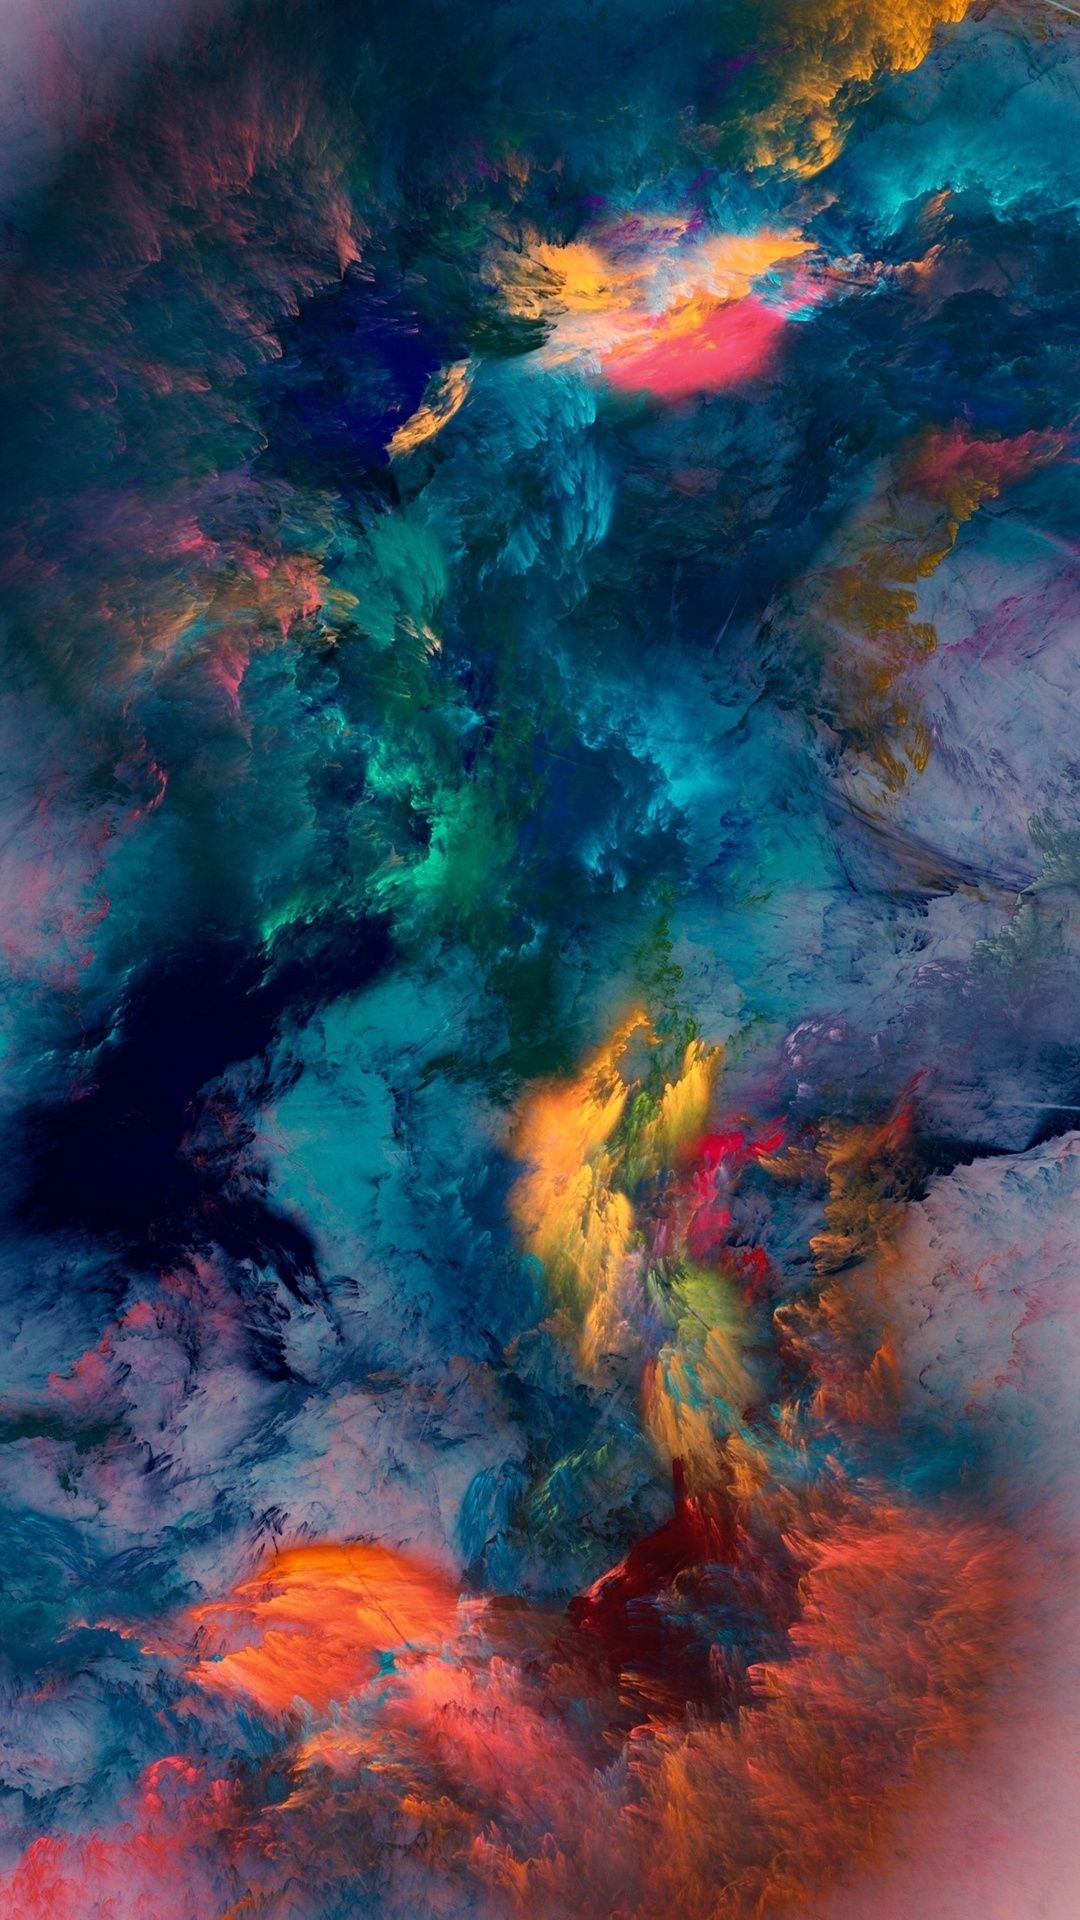 colour storm wallpaper | digital art in 2018 | pinterest | iphone